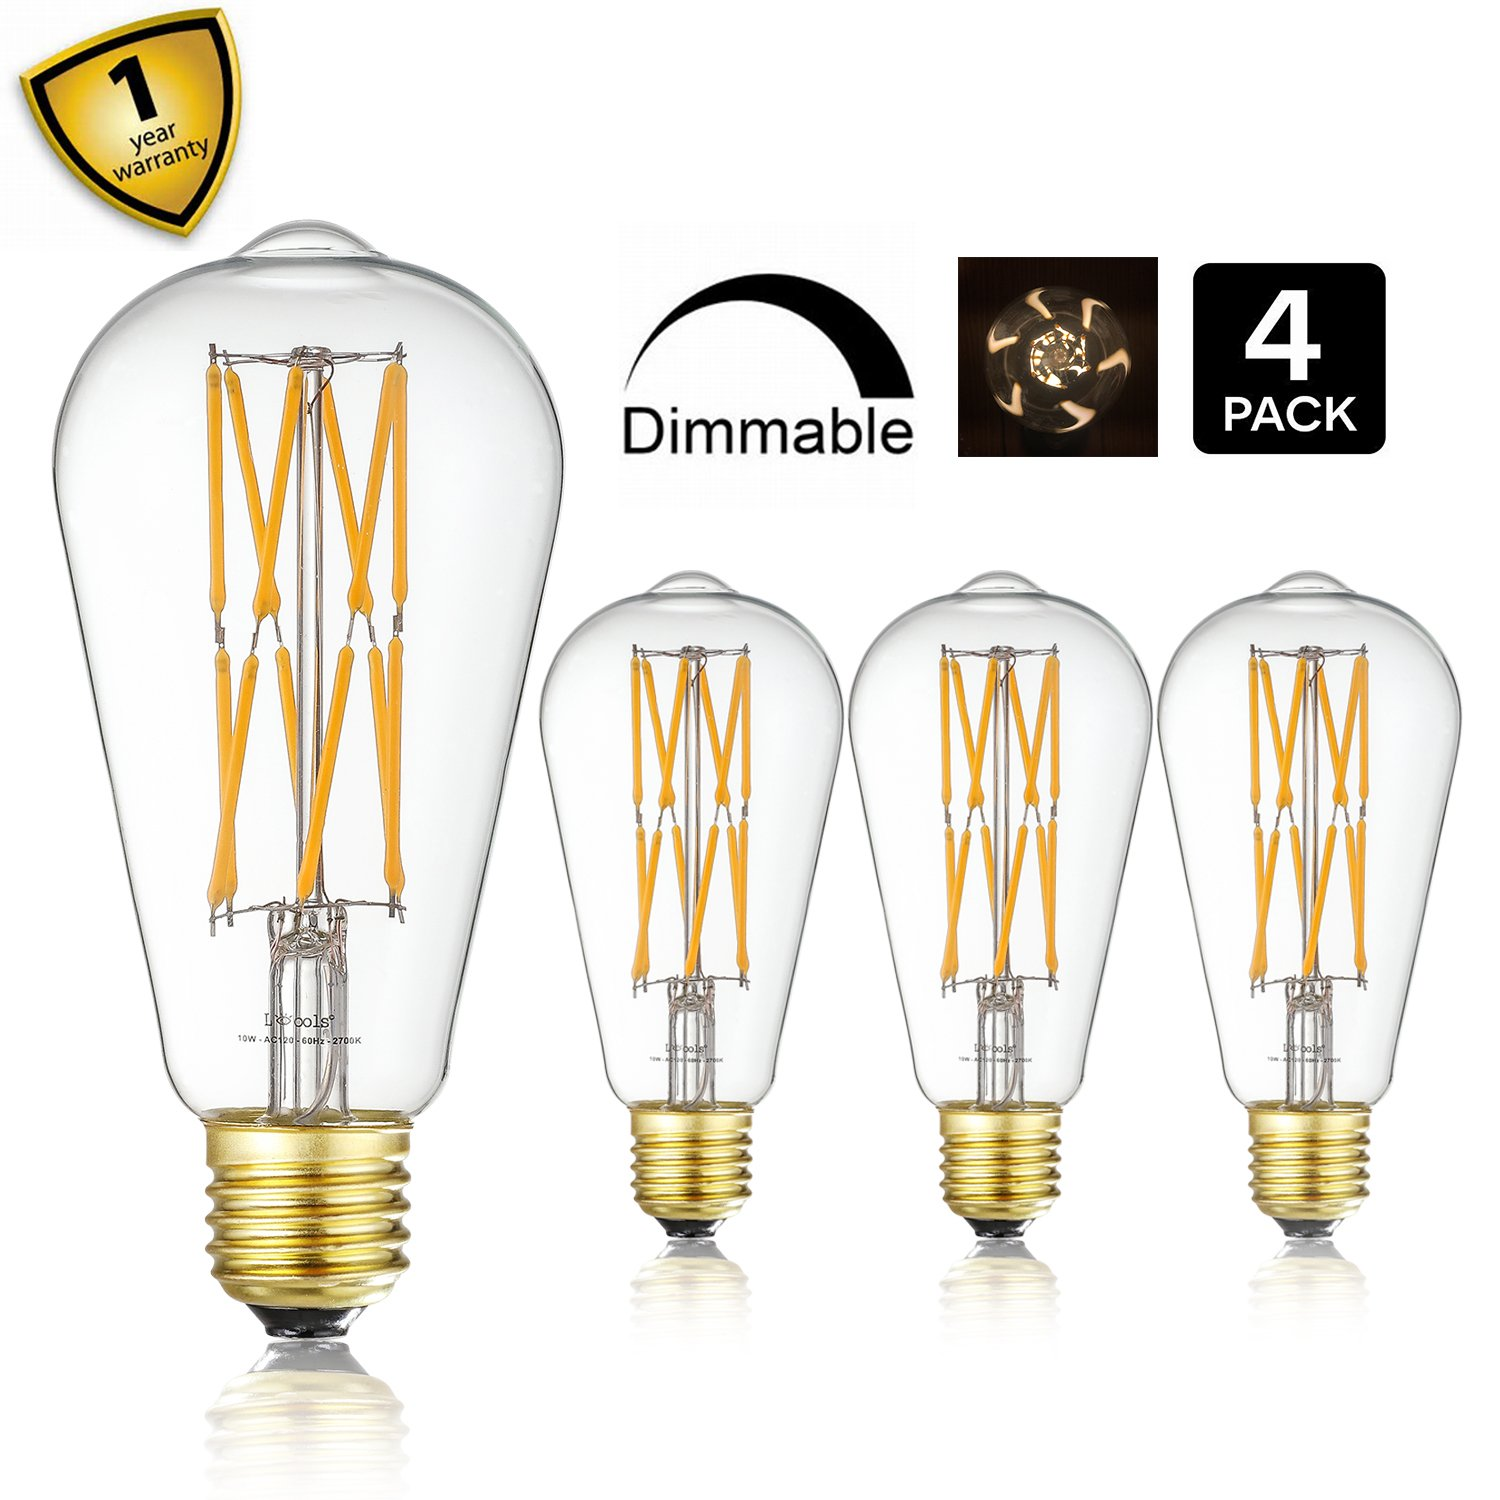 10W Edison Style Vintage LED Filament Light Bulb,ST64(ST21) Led Retro Bulb,100 Watt Equivalent Light Bulbs,Warm White 2700K,1200LM,Dimmable, E26 Medium Base Lamp, Antique Shape, (4 Pack)